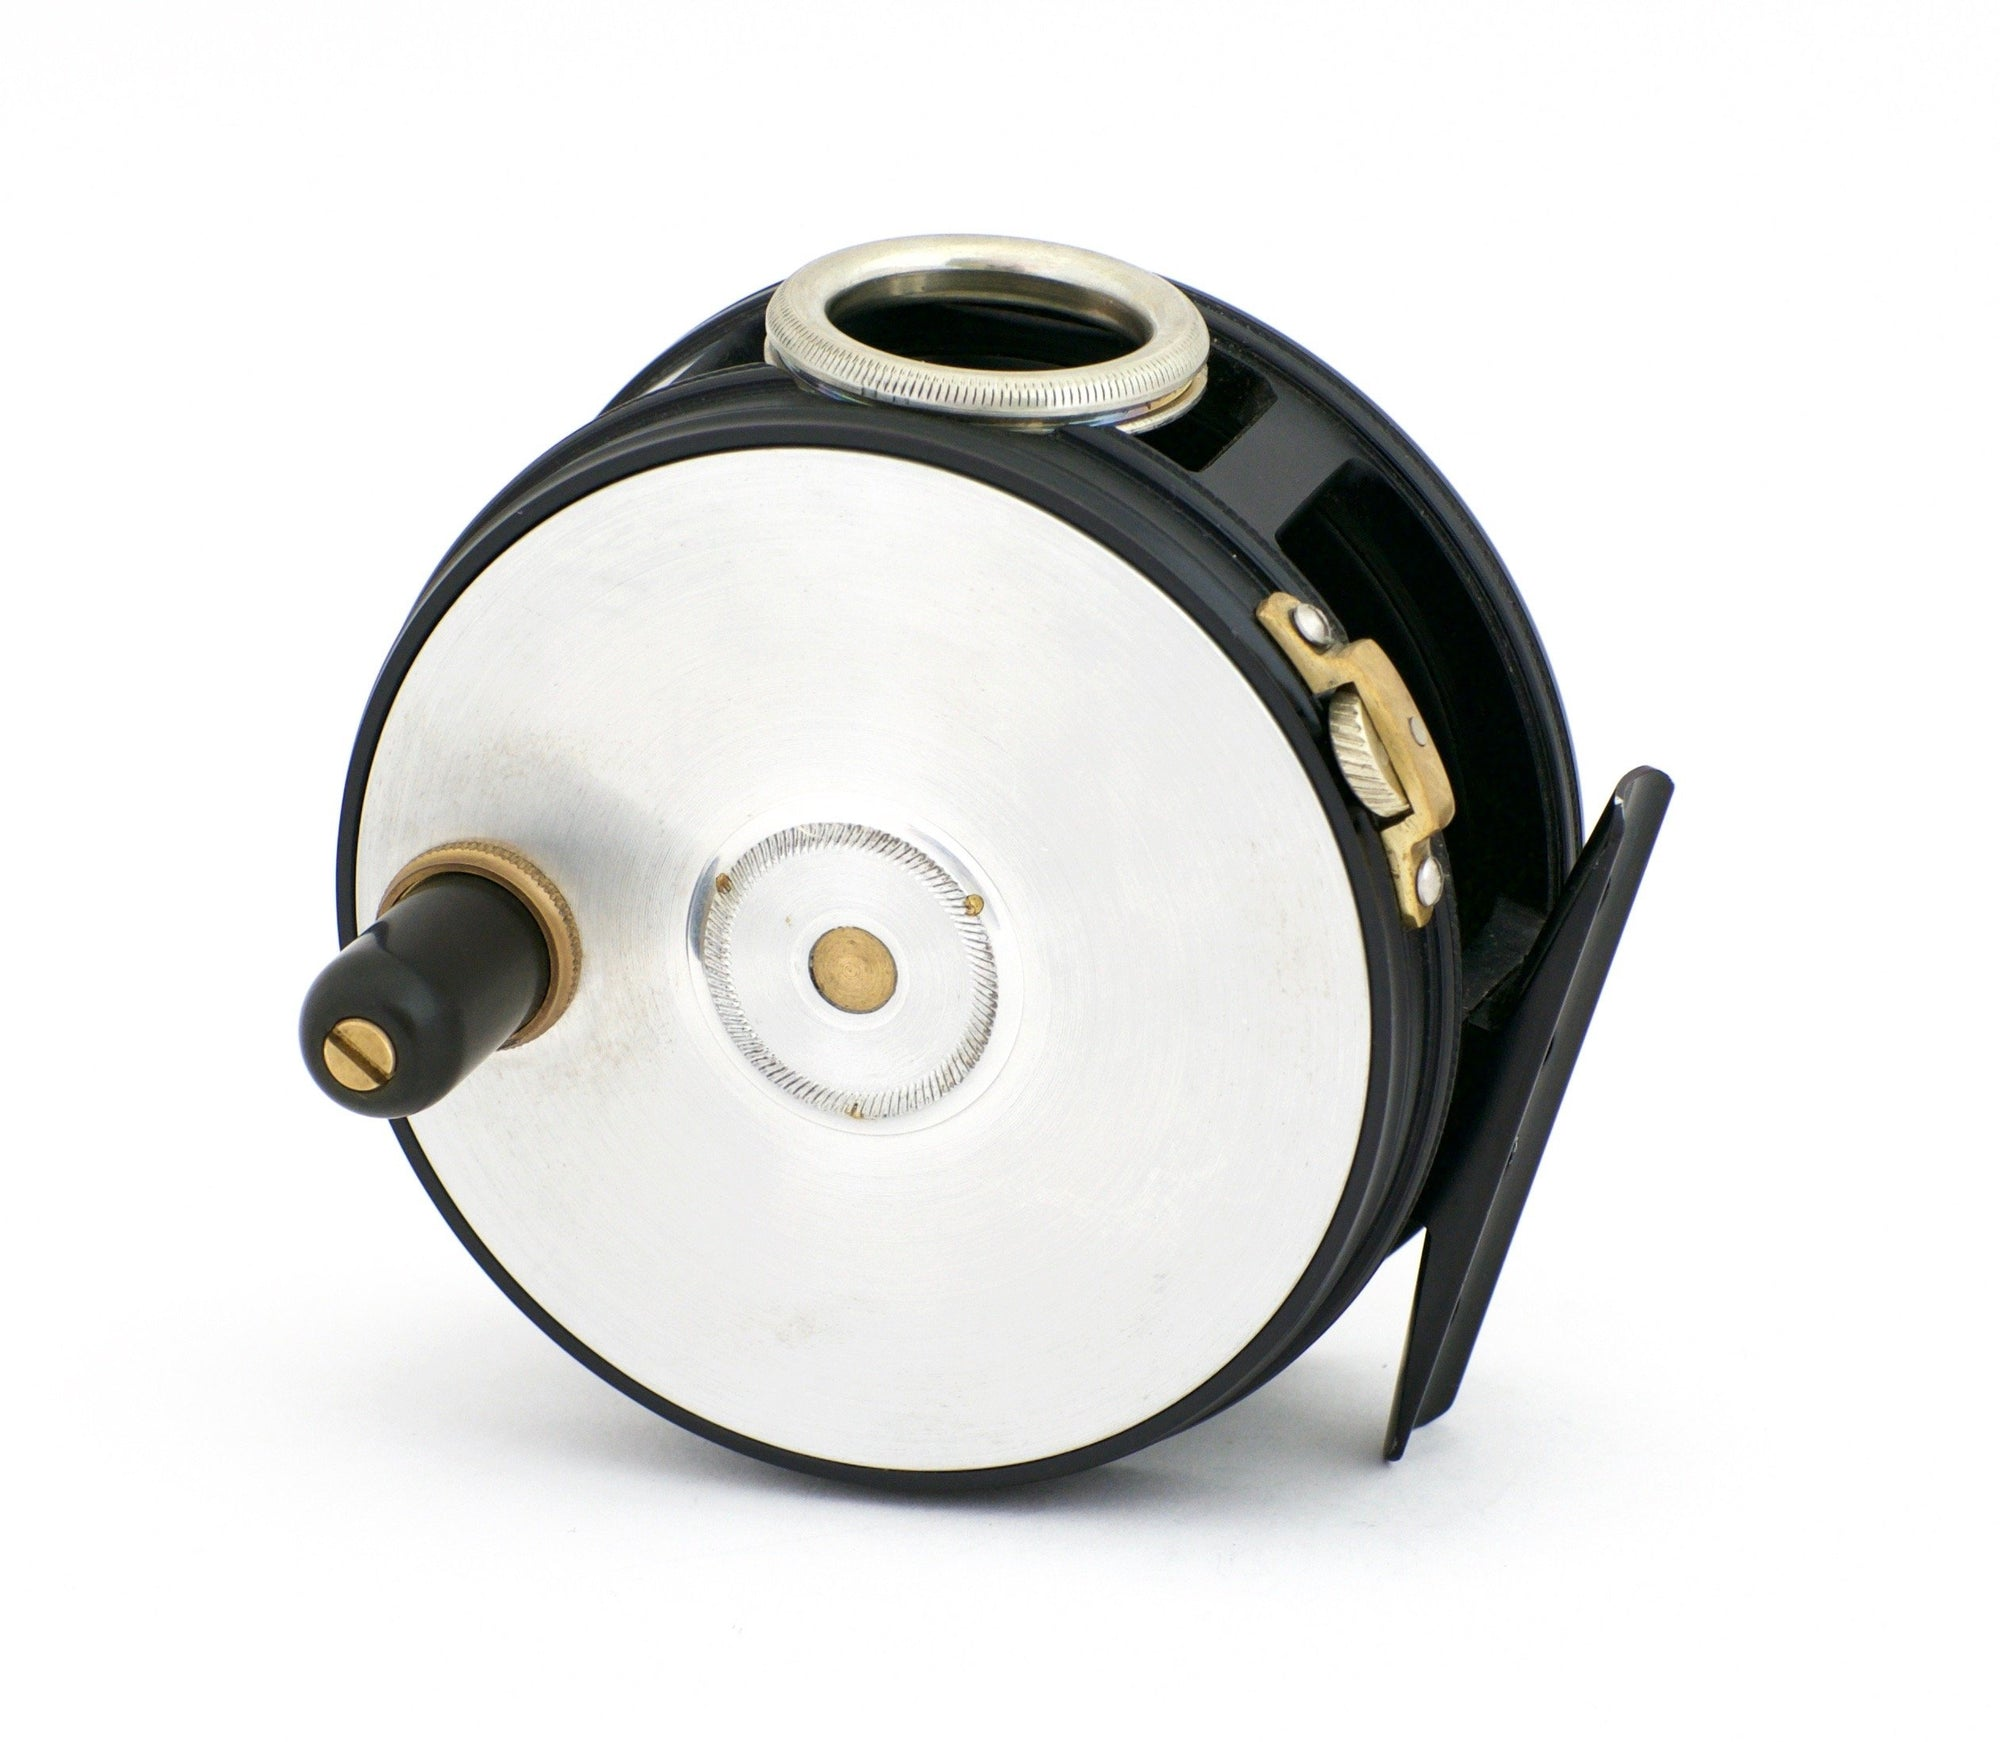 "Henshaw, Chris - 3 3/4"" Perfect-Style Fly Reel"